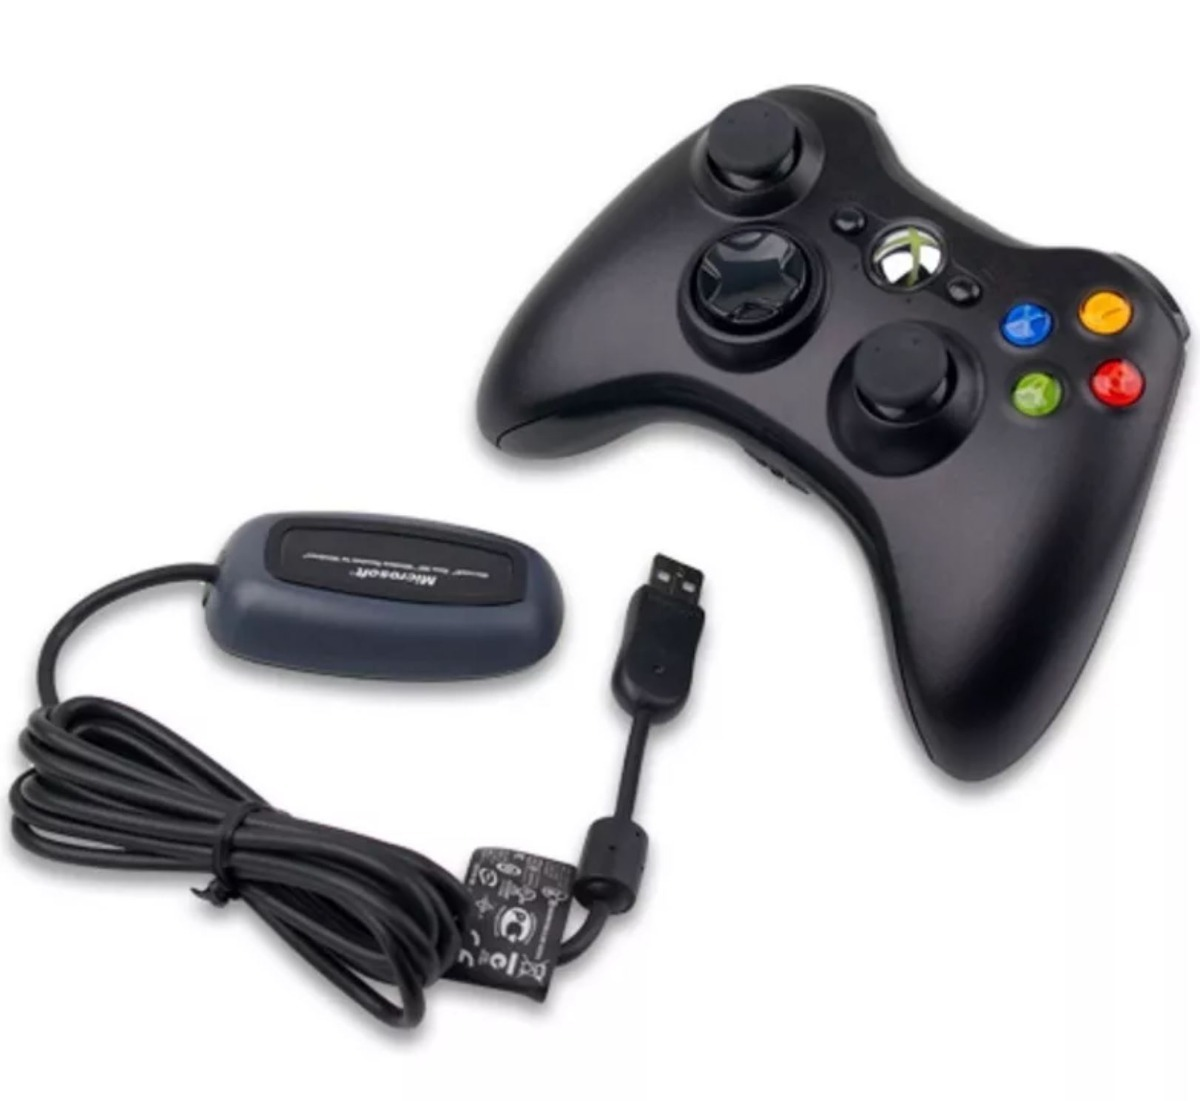 receptor inalambrico control xbox 360 para pc adaptador cont en mercado libre. Black Bedroom Furniture Sets. Home Design Ideas